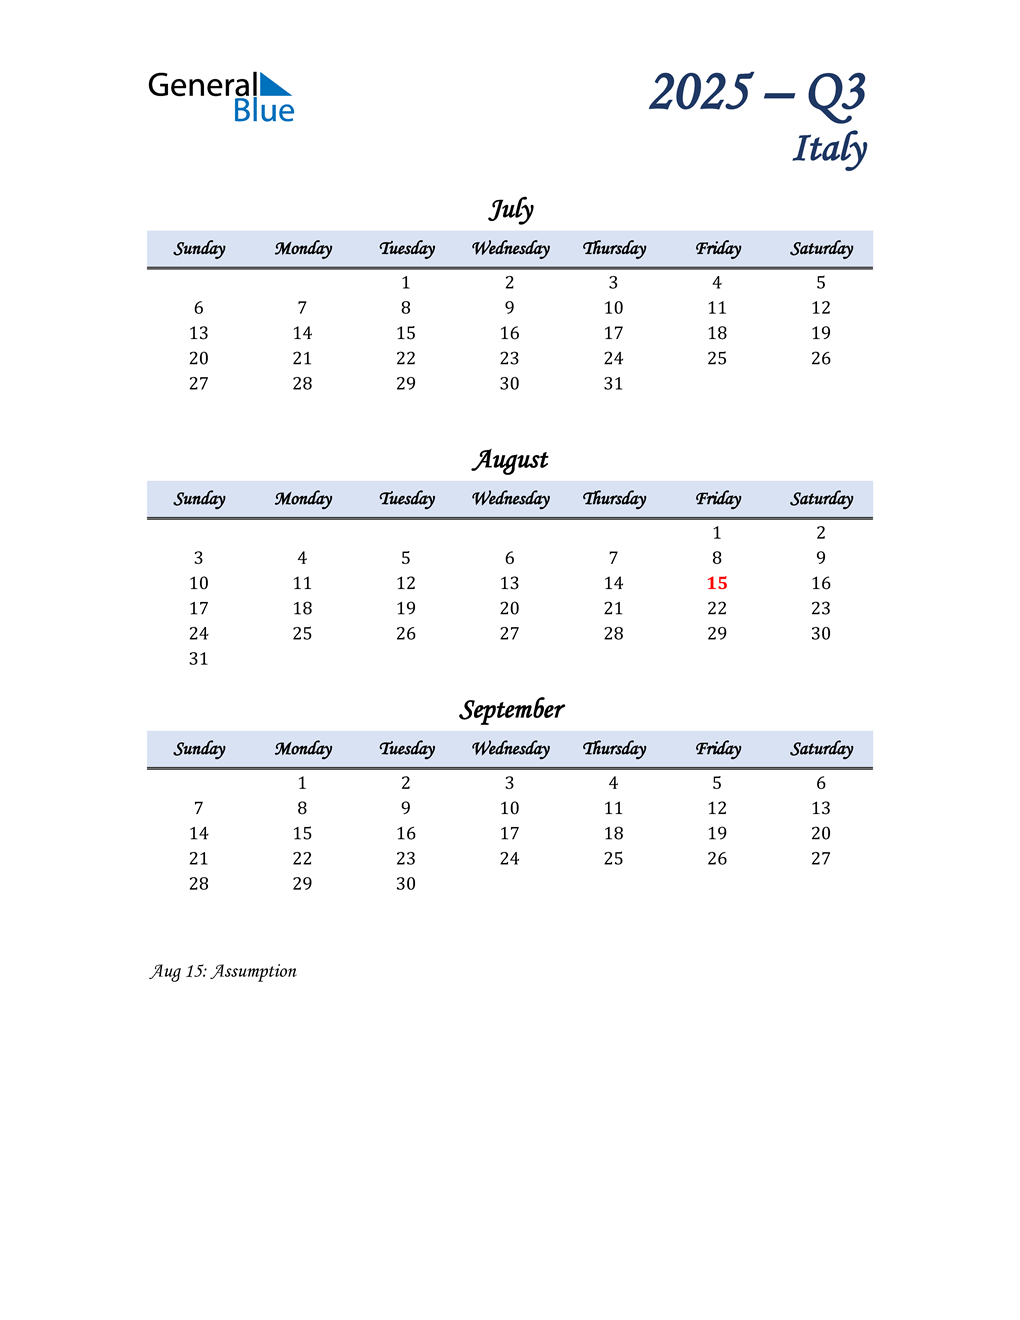 July, August, and September Calendar for Italy